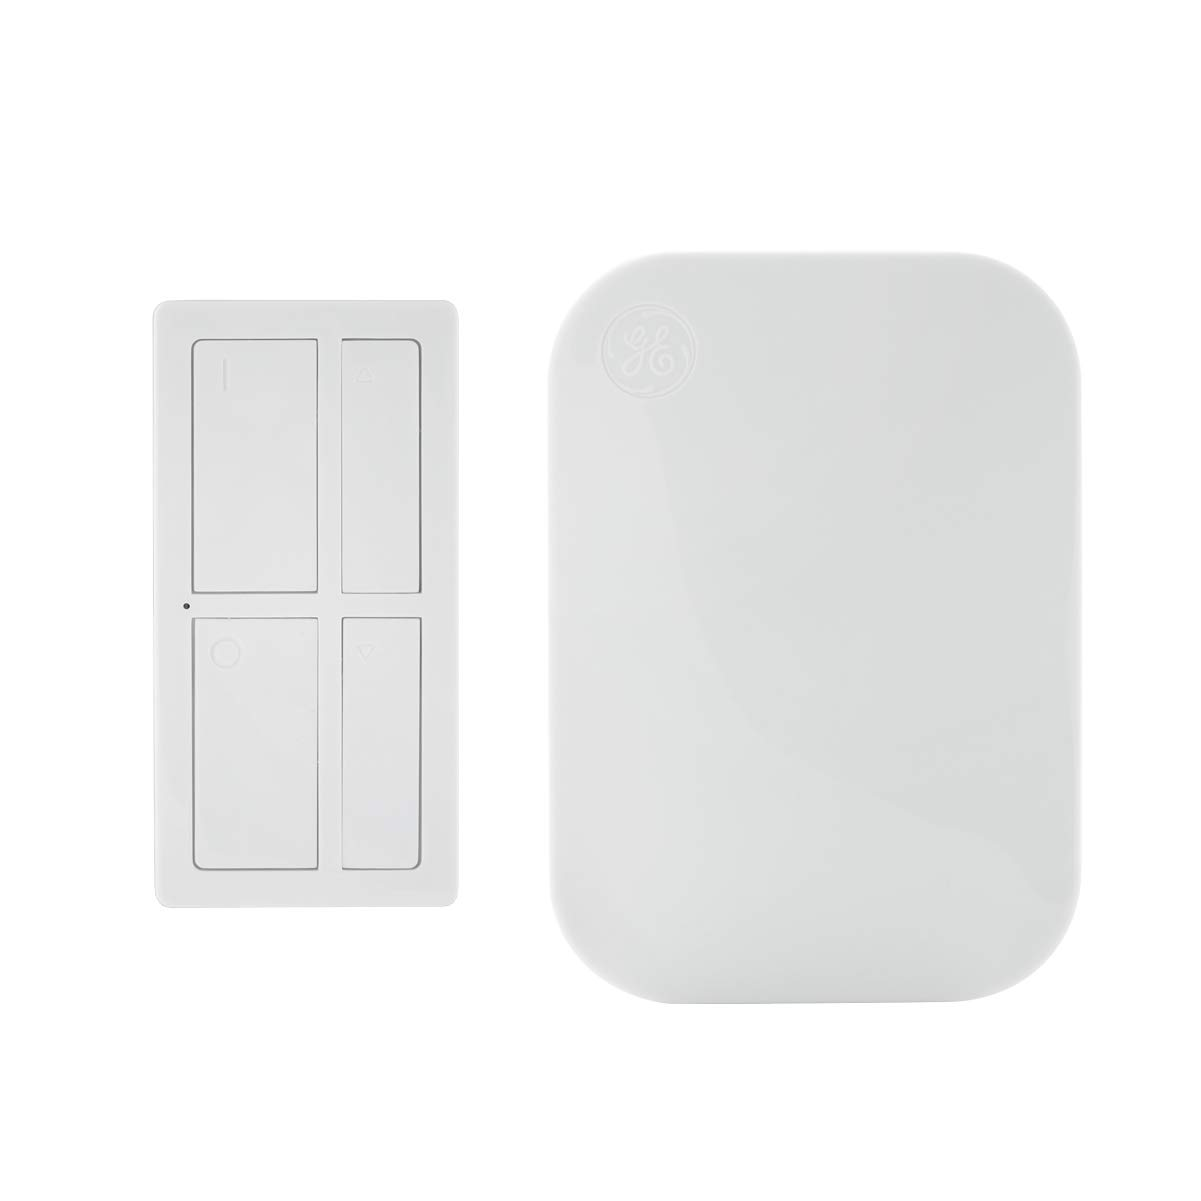 GE mySelectSmart Dimmable Wireless Remote Control Light Switch, On/Off & Full-Range Dimming, 1 Outlet, 150 ft. Range from Plug-In Receiver, Ideal for Lamps & Indoor Lighting, No Wiring Needed, 37781